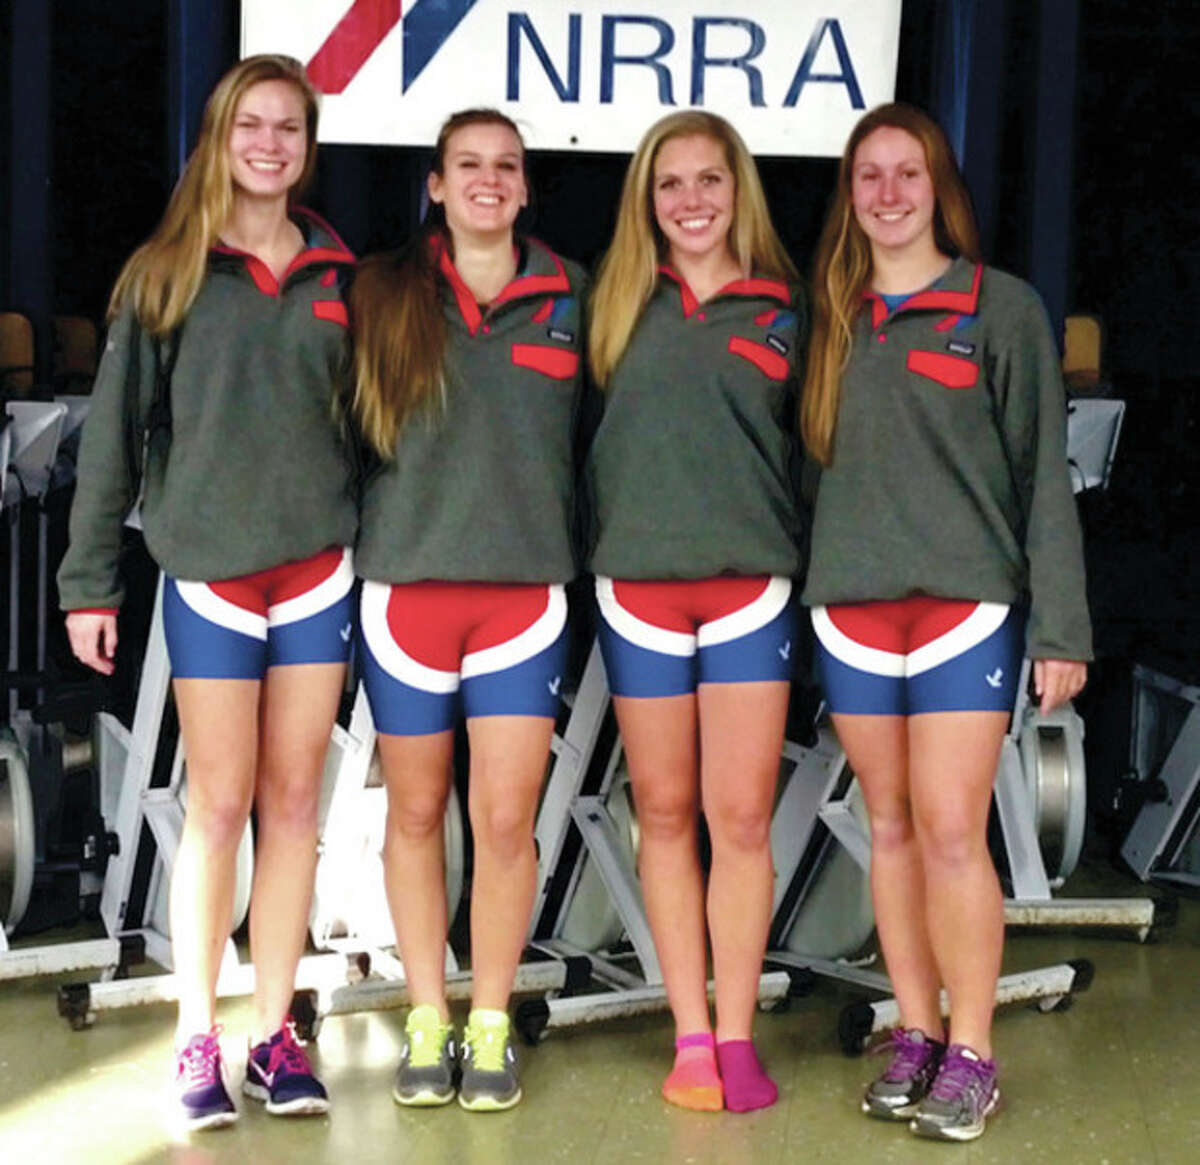 Contributed photo Four Norwalk River Rowing Association competitors have signed National Letters of Intent to attend and compete for Division I schools. The quarter, from left, includes Amanda Jenkins of Wilton, Julia Barr of Norwalk, Kylie O'Conner of Wilton and Maggie Walsh of Trumbull.